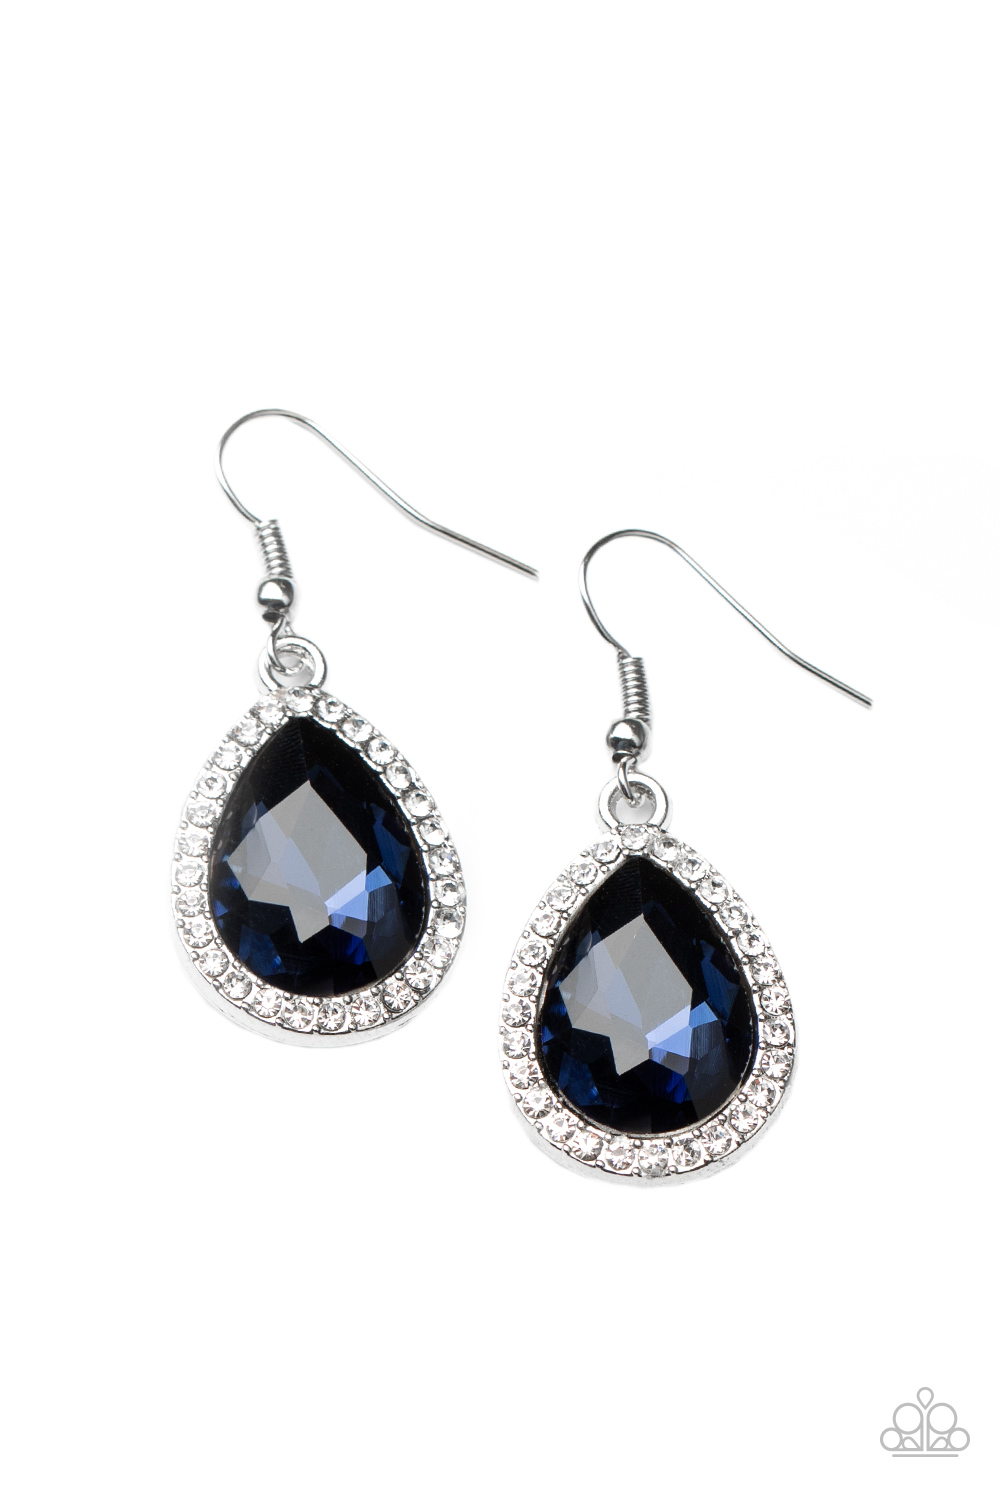 Paparazzi Accessories:  Dripping With Drama - Blue (82)